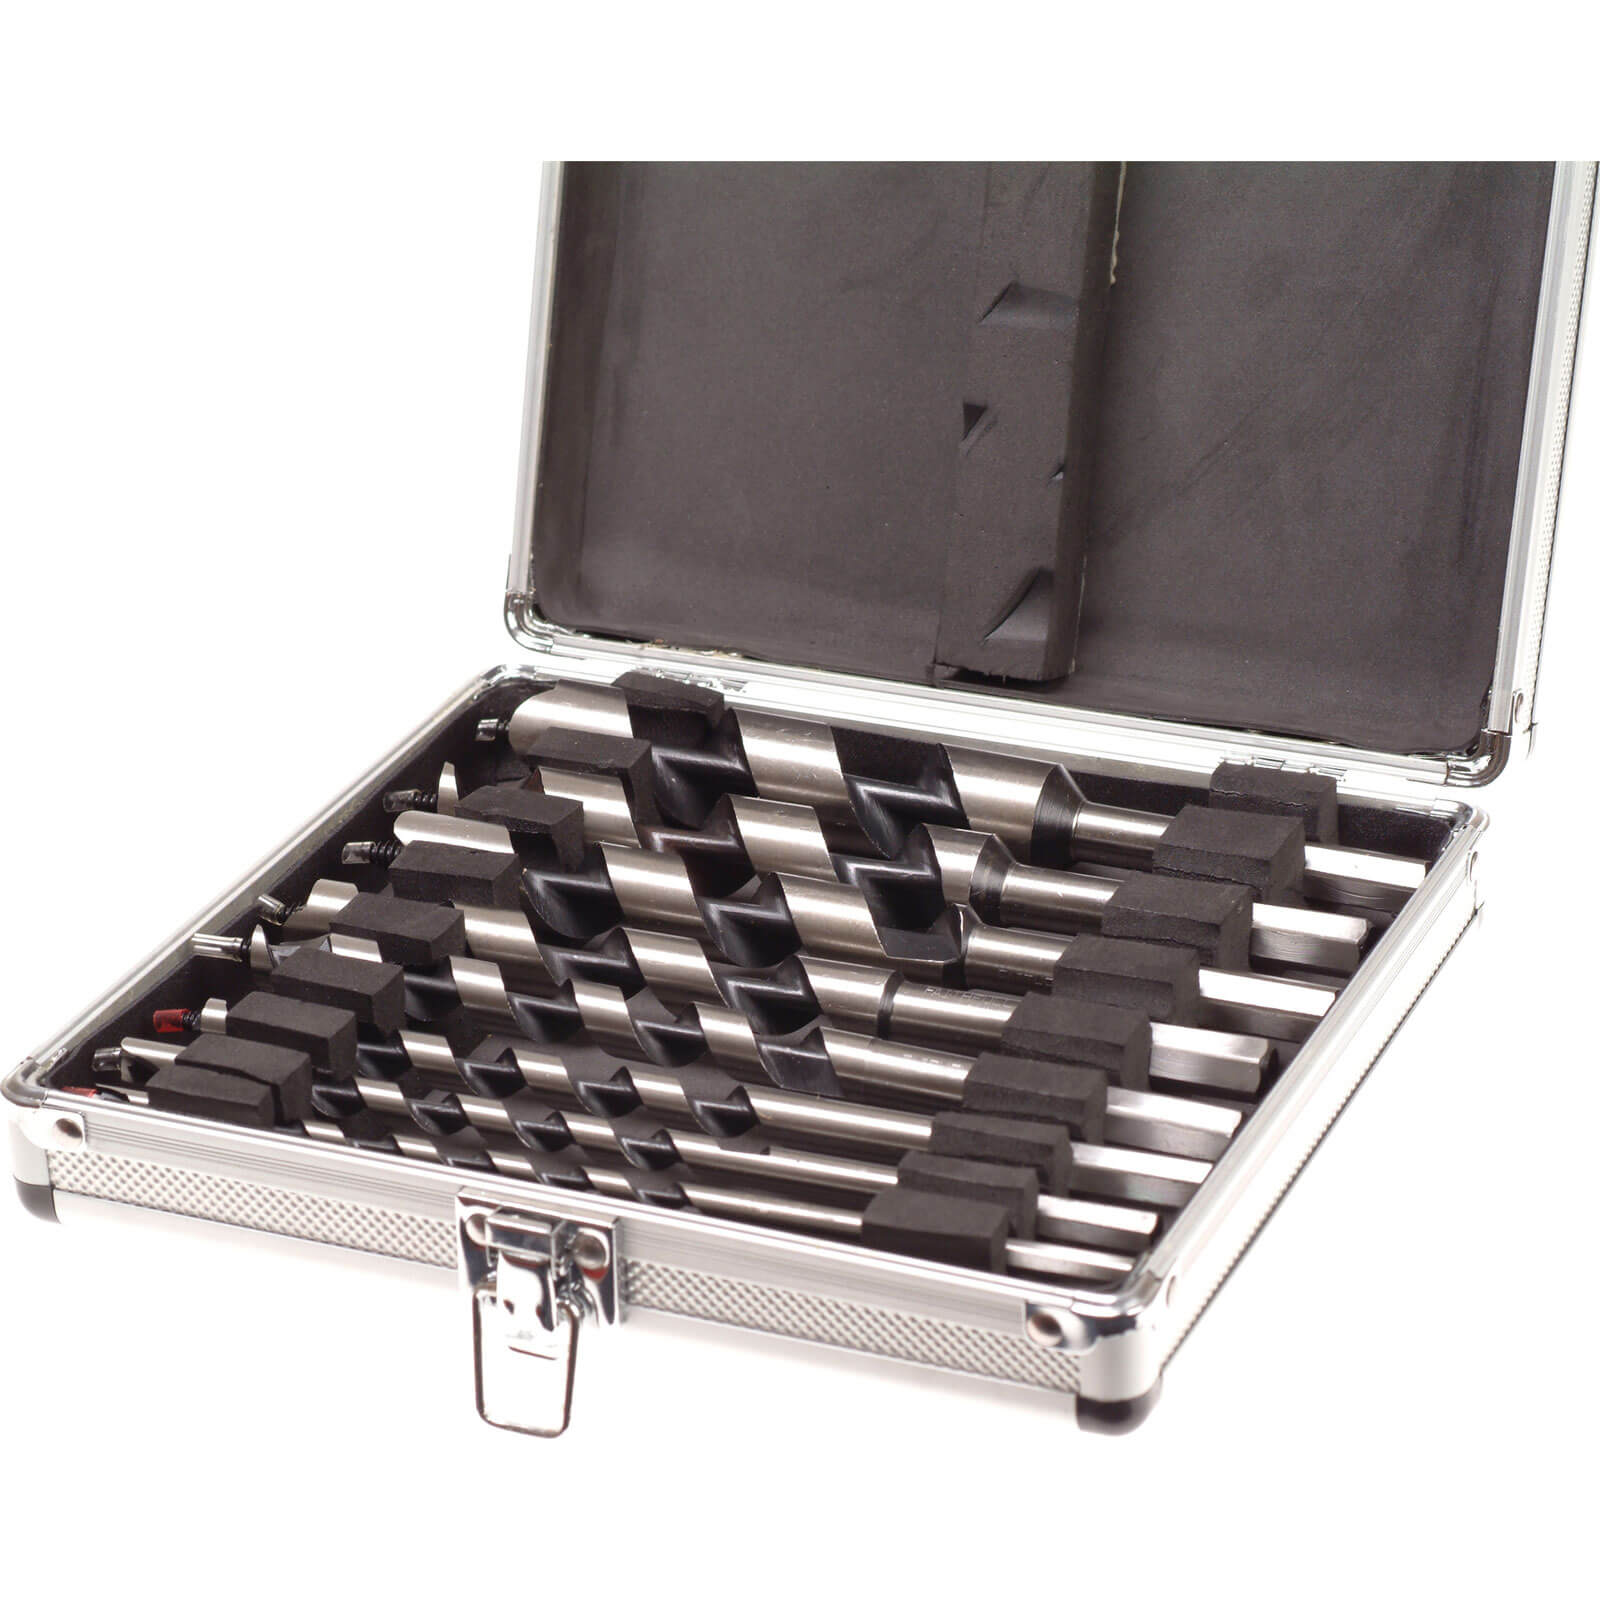 Image of Faithfull 8 Piece Combination Auger Drill Bit Set